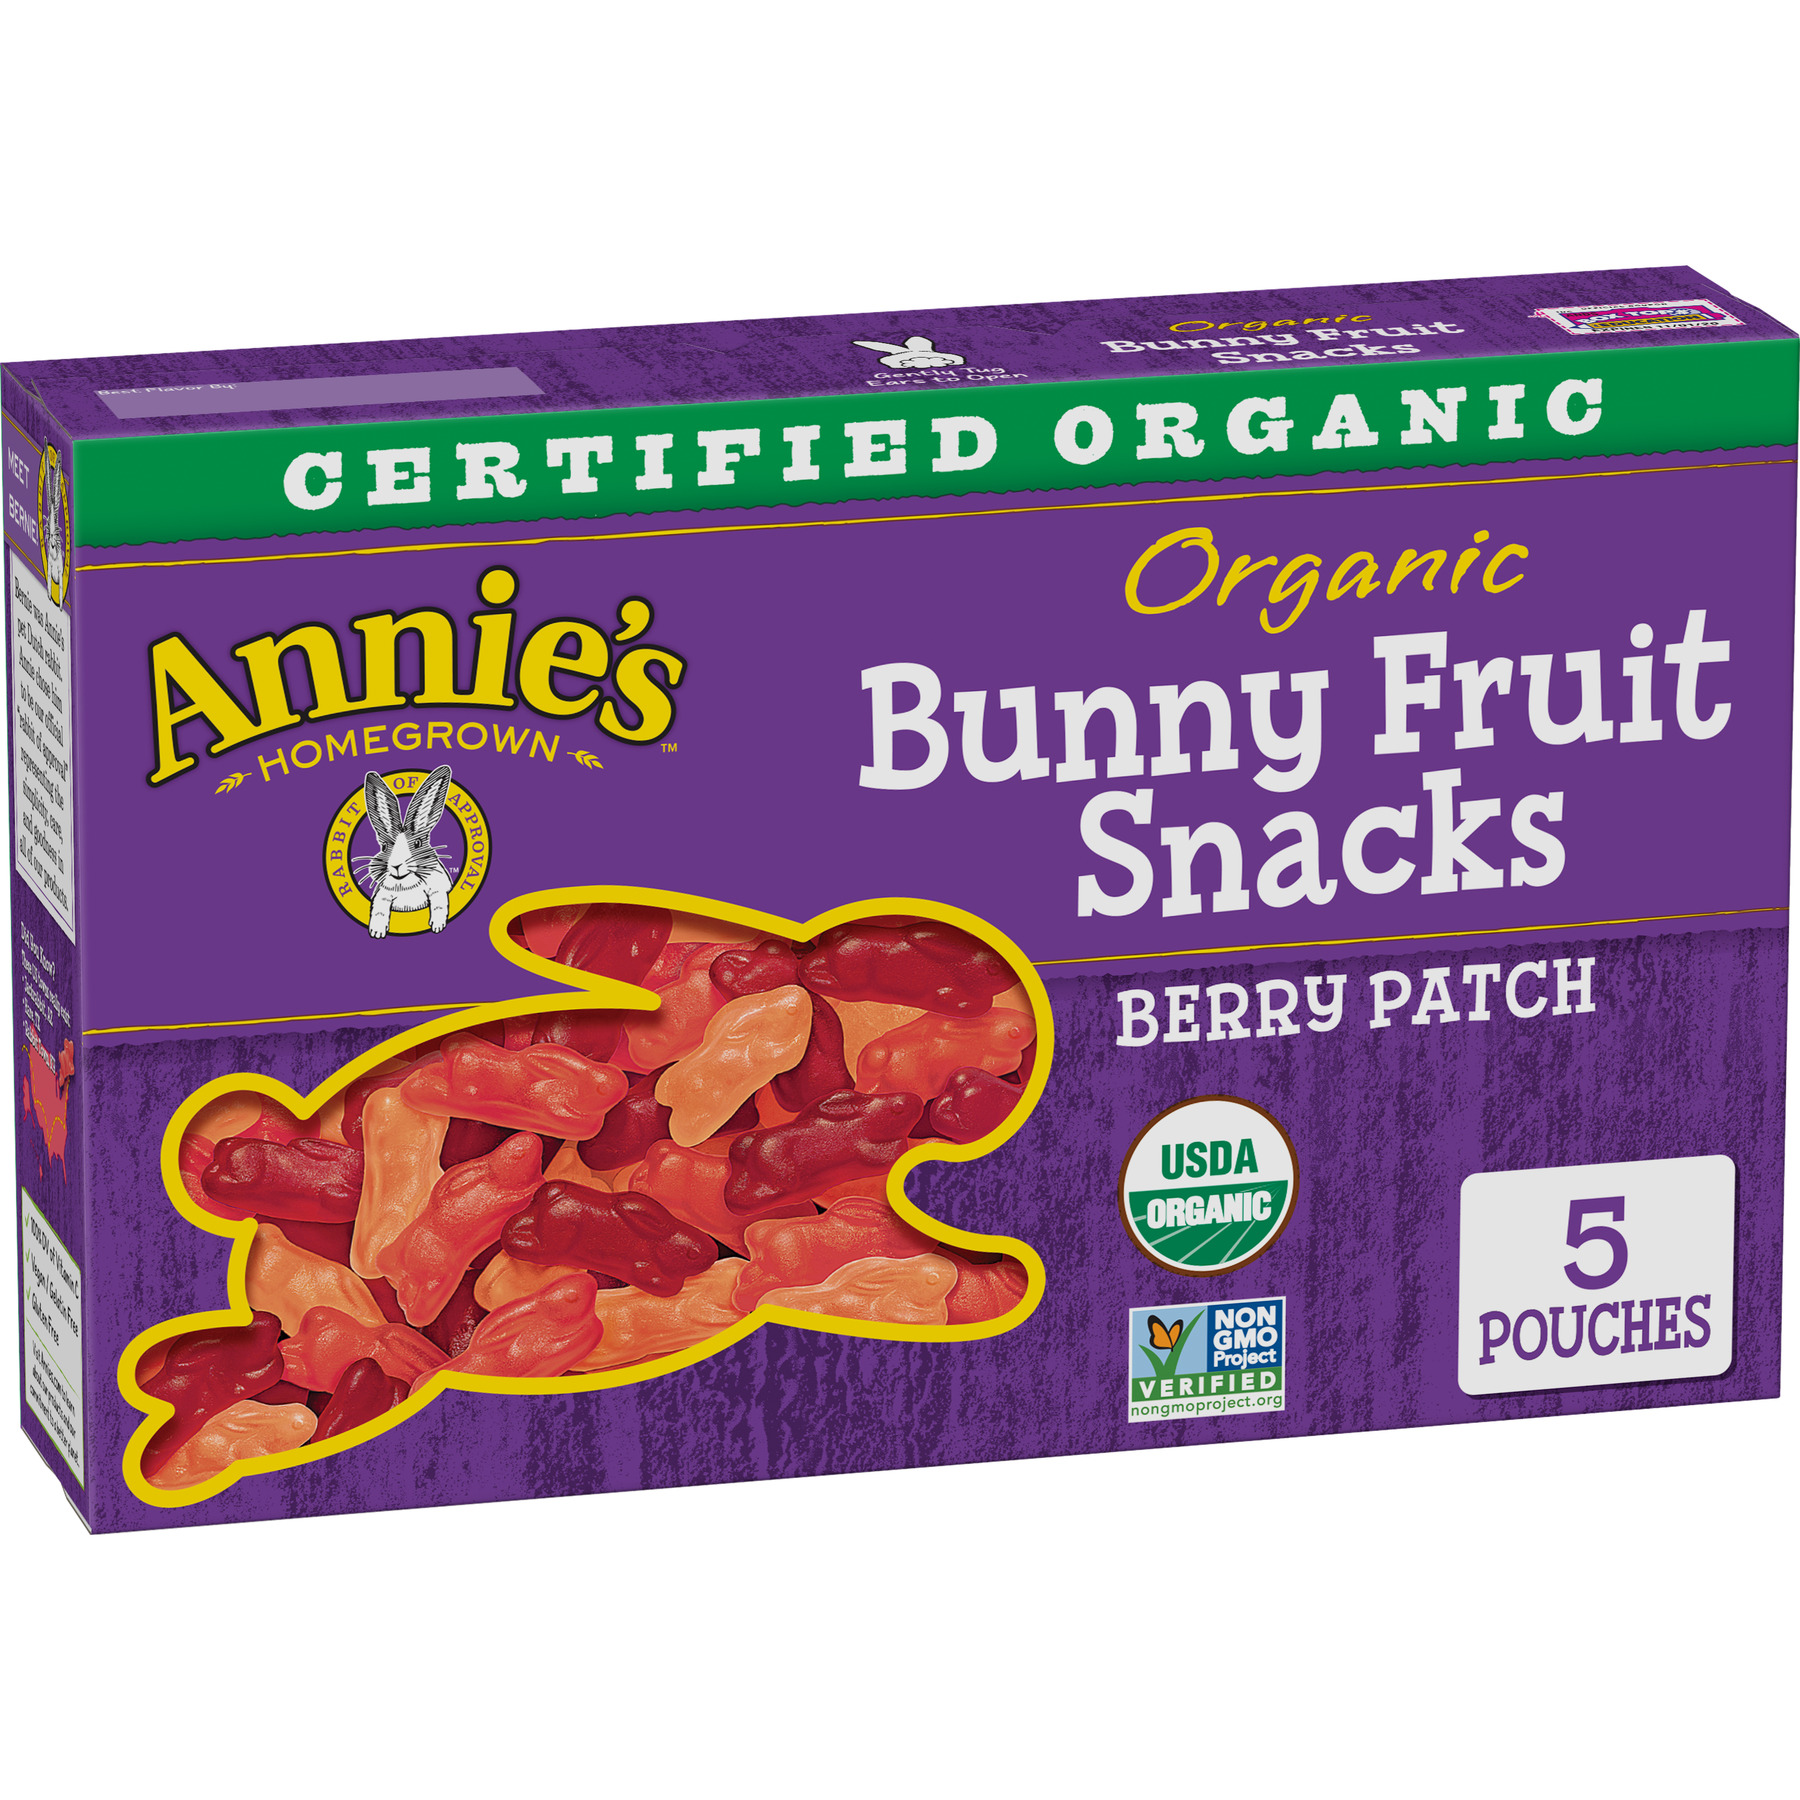 Annie's Organic Bunny Fruit Snacks, Berry Patch, 5 Pouches, 4.0 oz